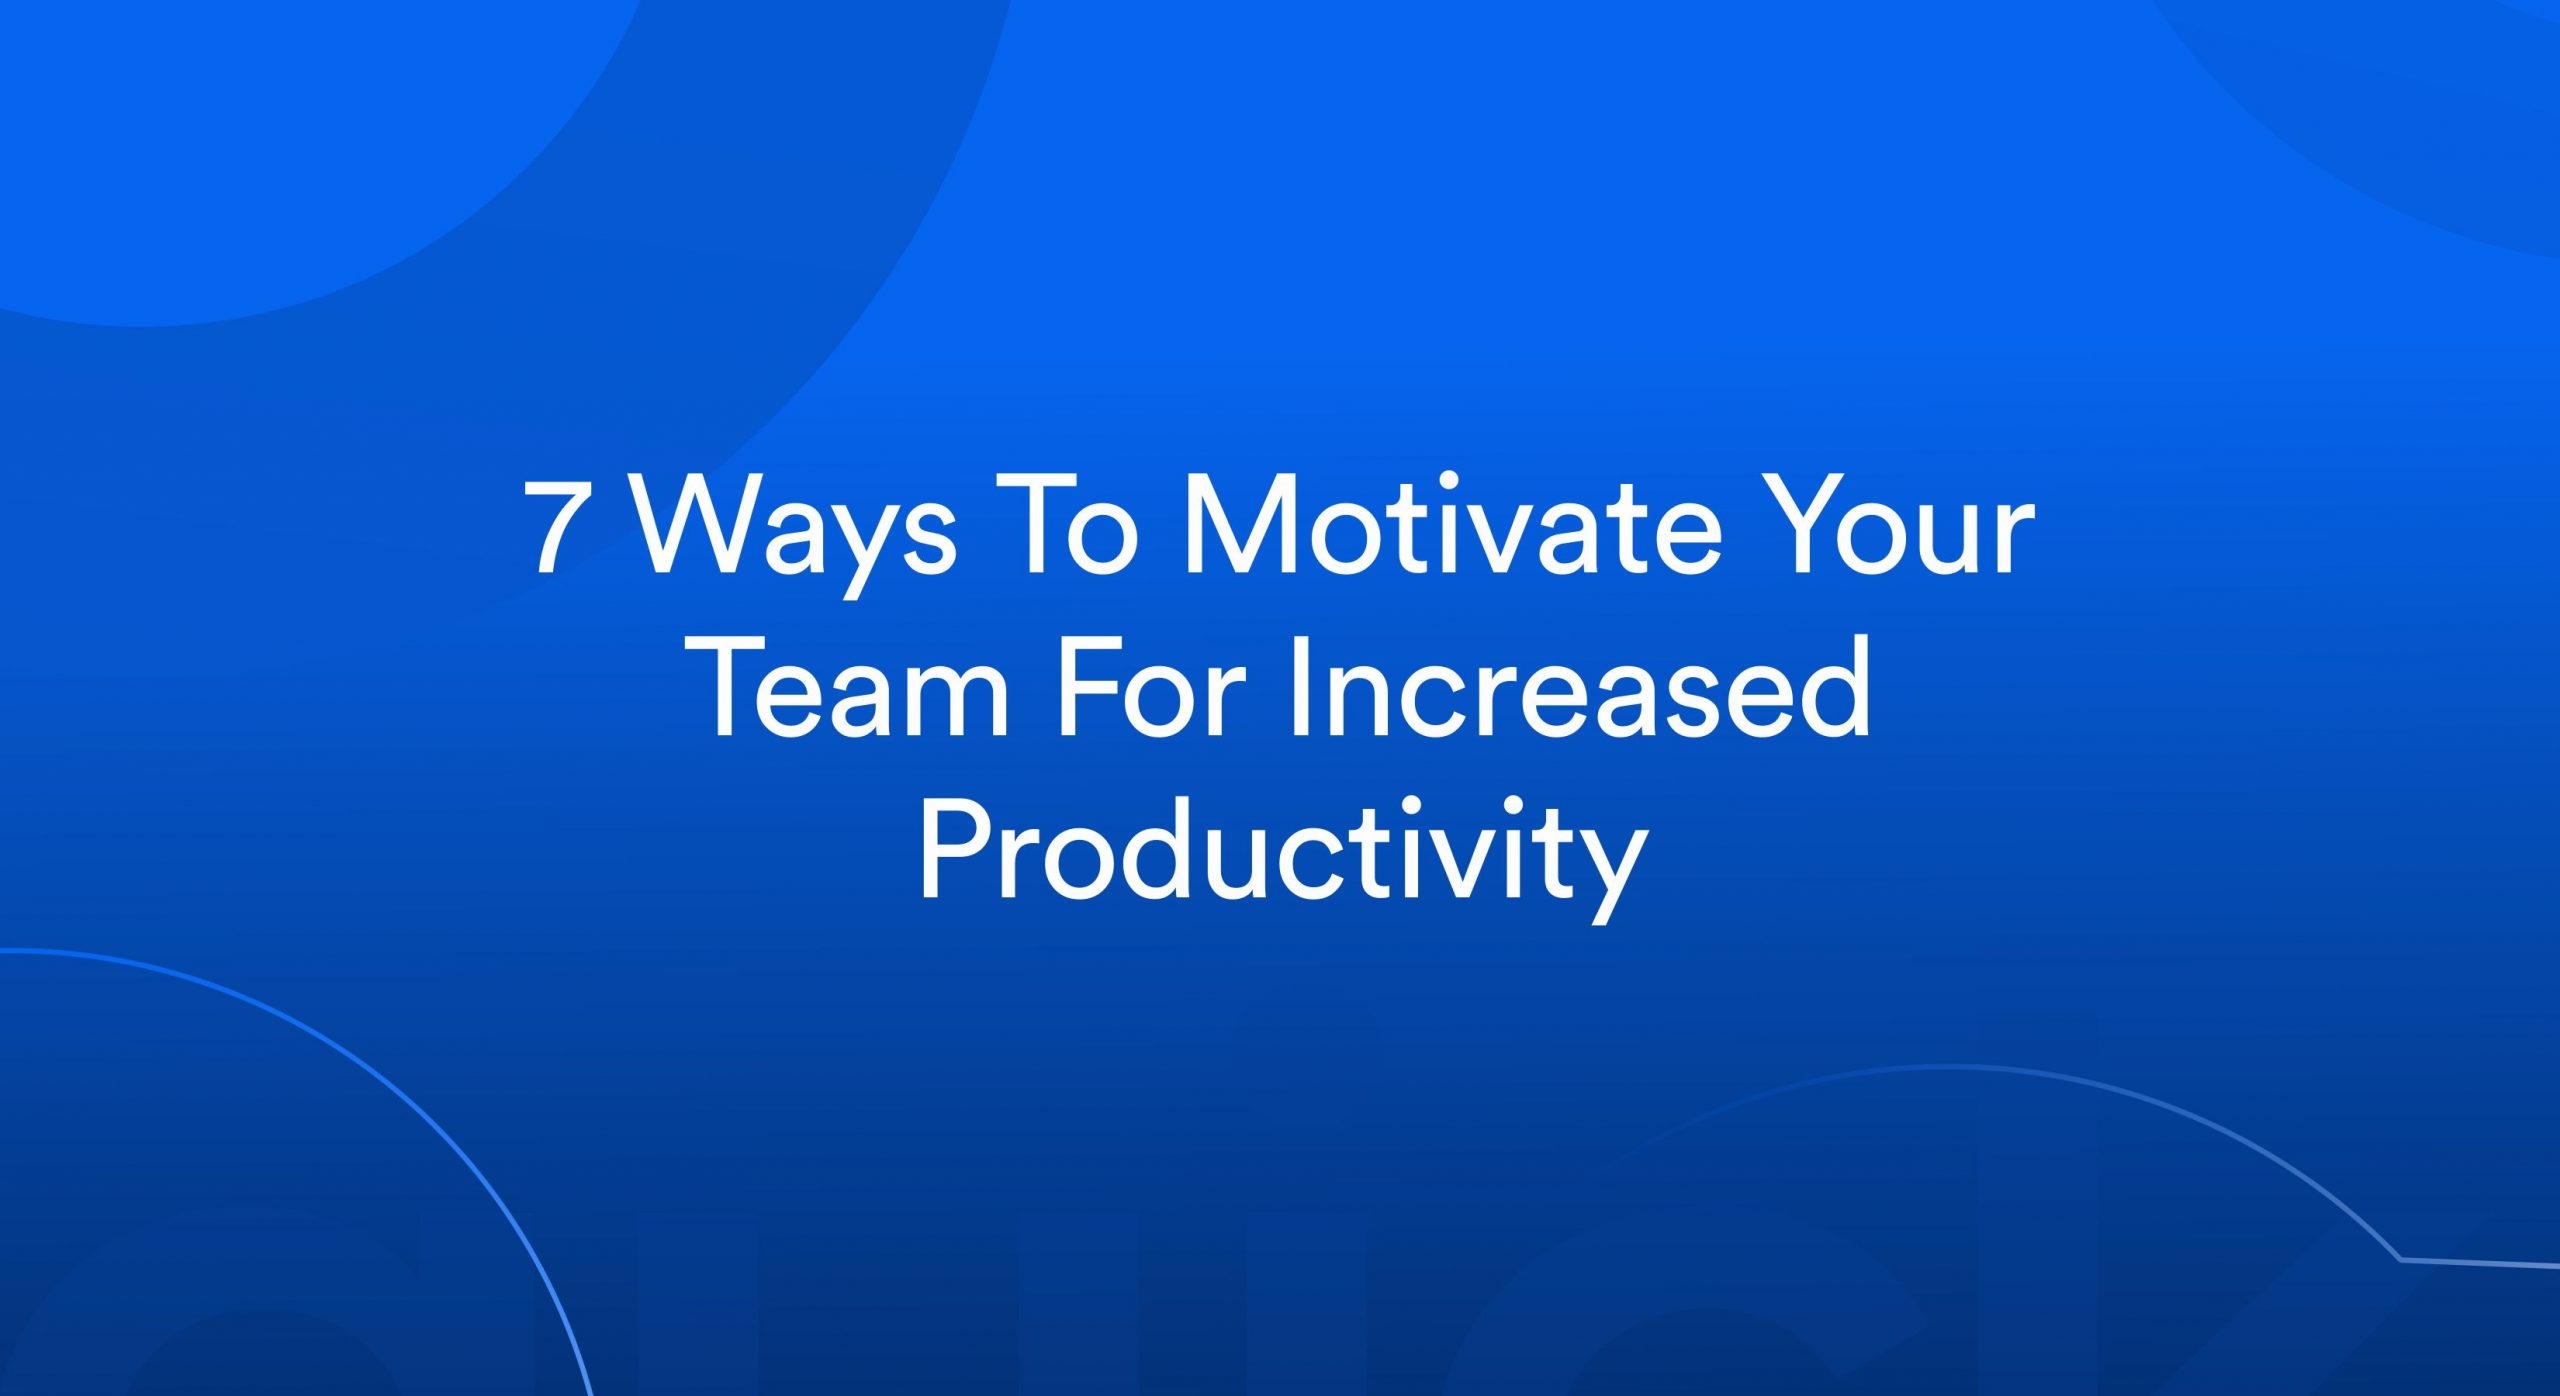 7 Best Ways To Motivate Your Team For Increased Productivity